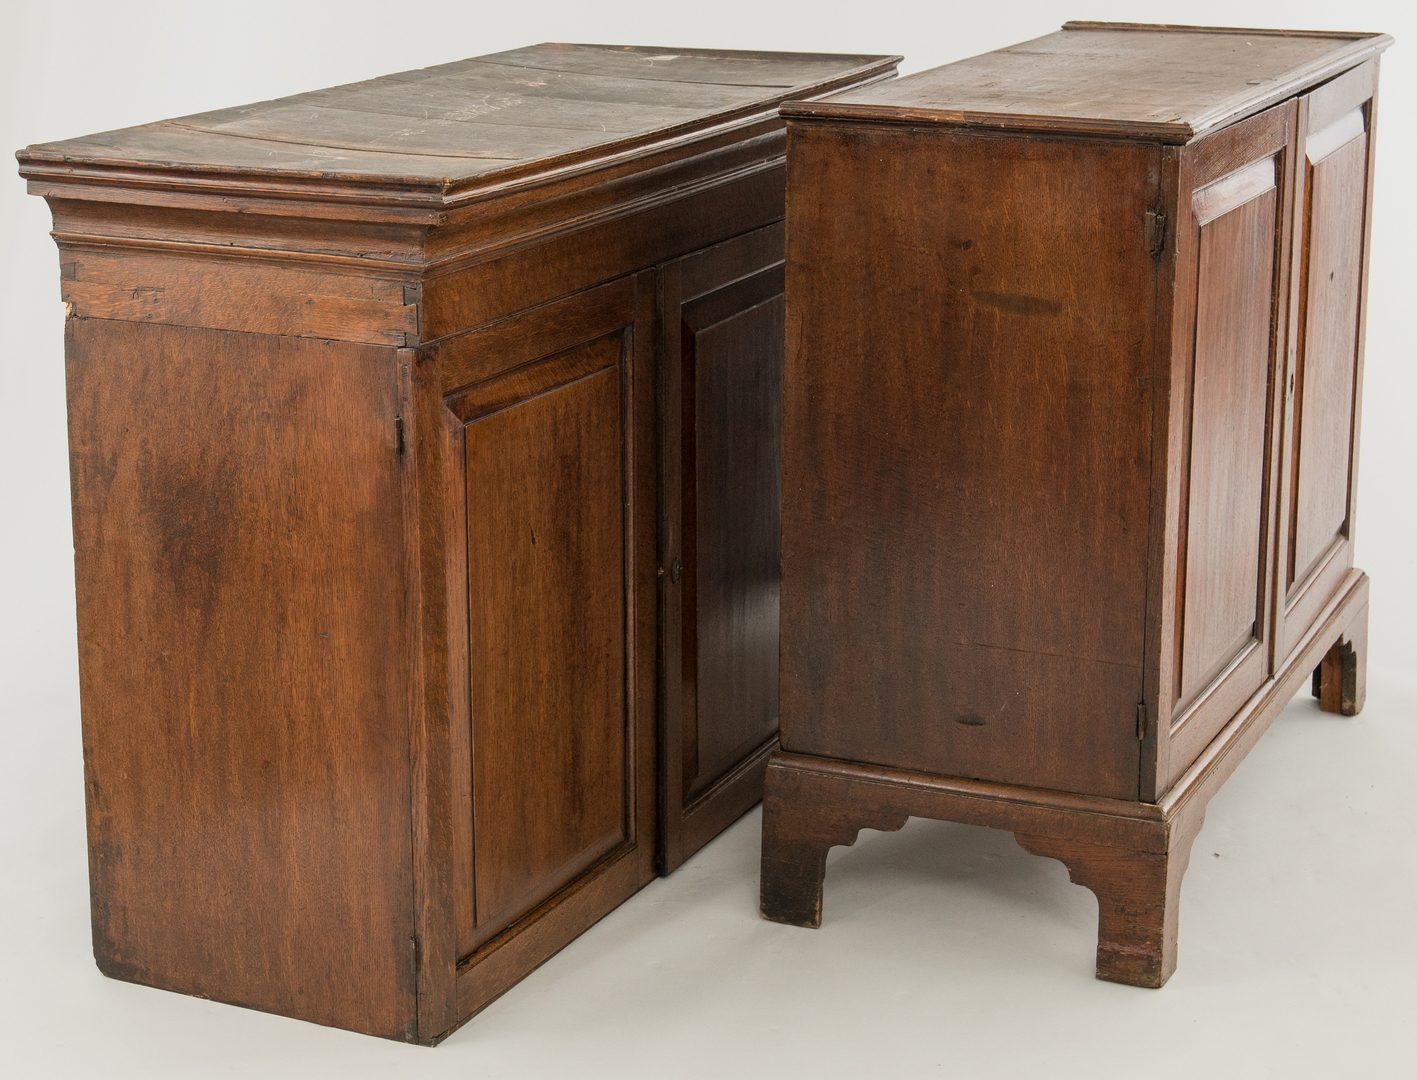 Lot 491: English Oak Linen Press, 18th c.